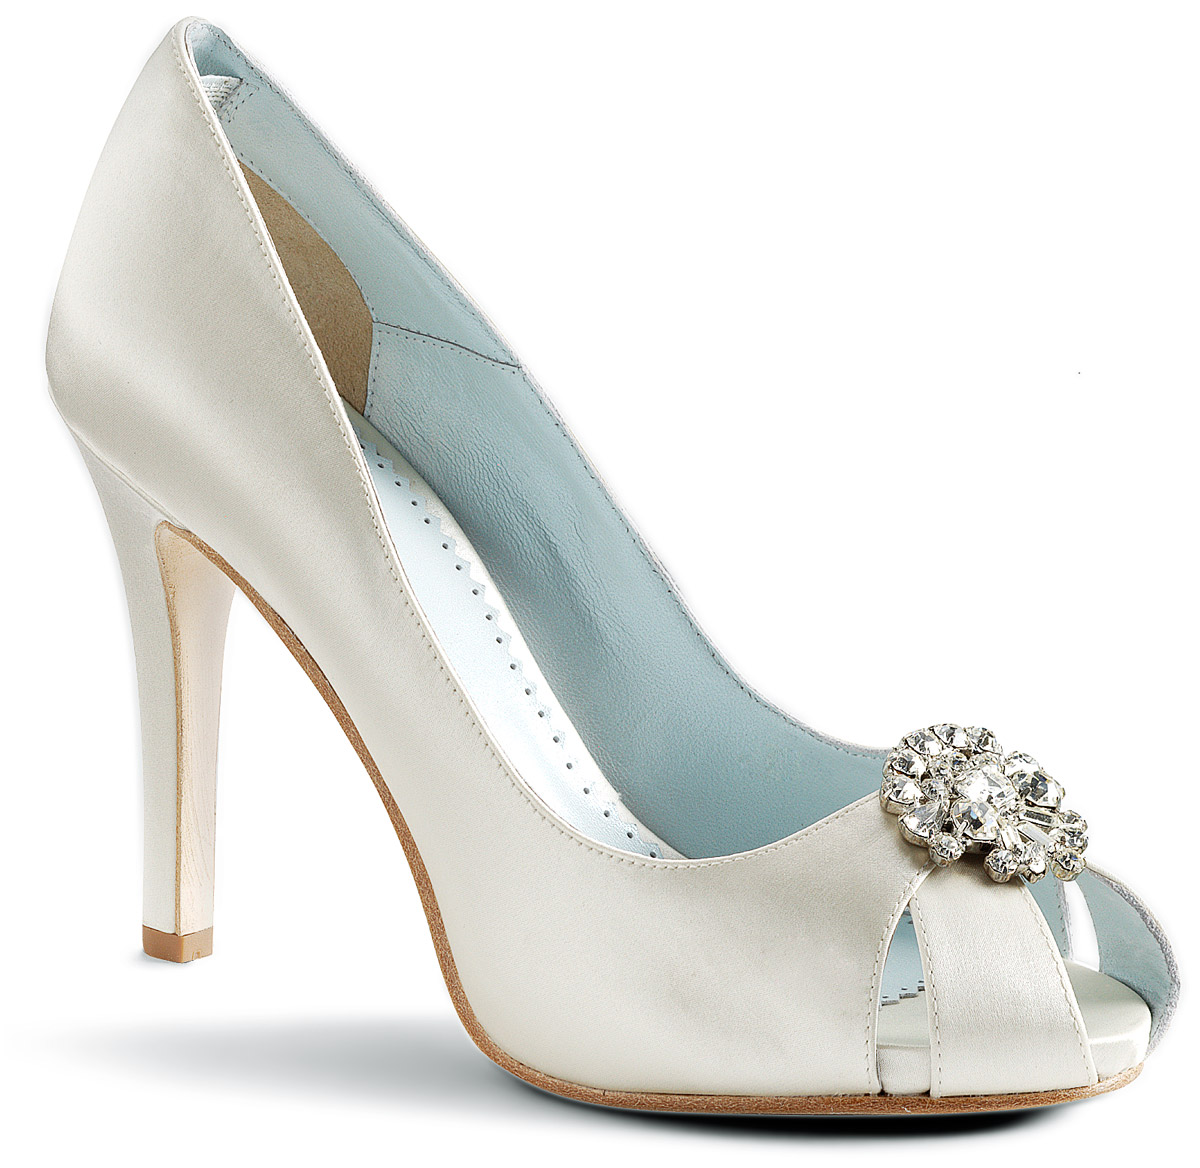 Exquisite Ivory Bridal Shoes